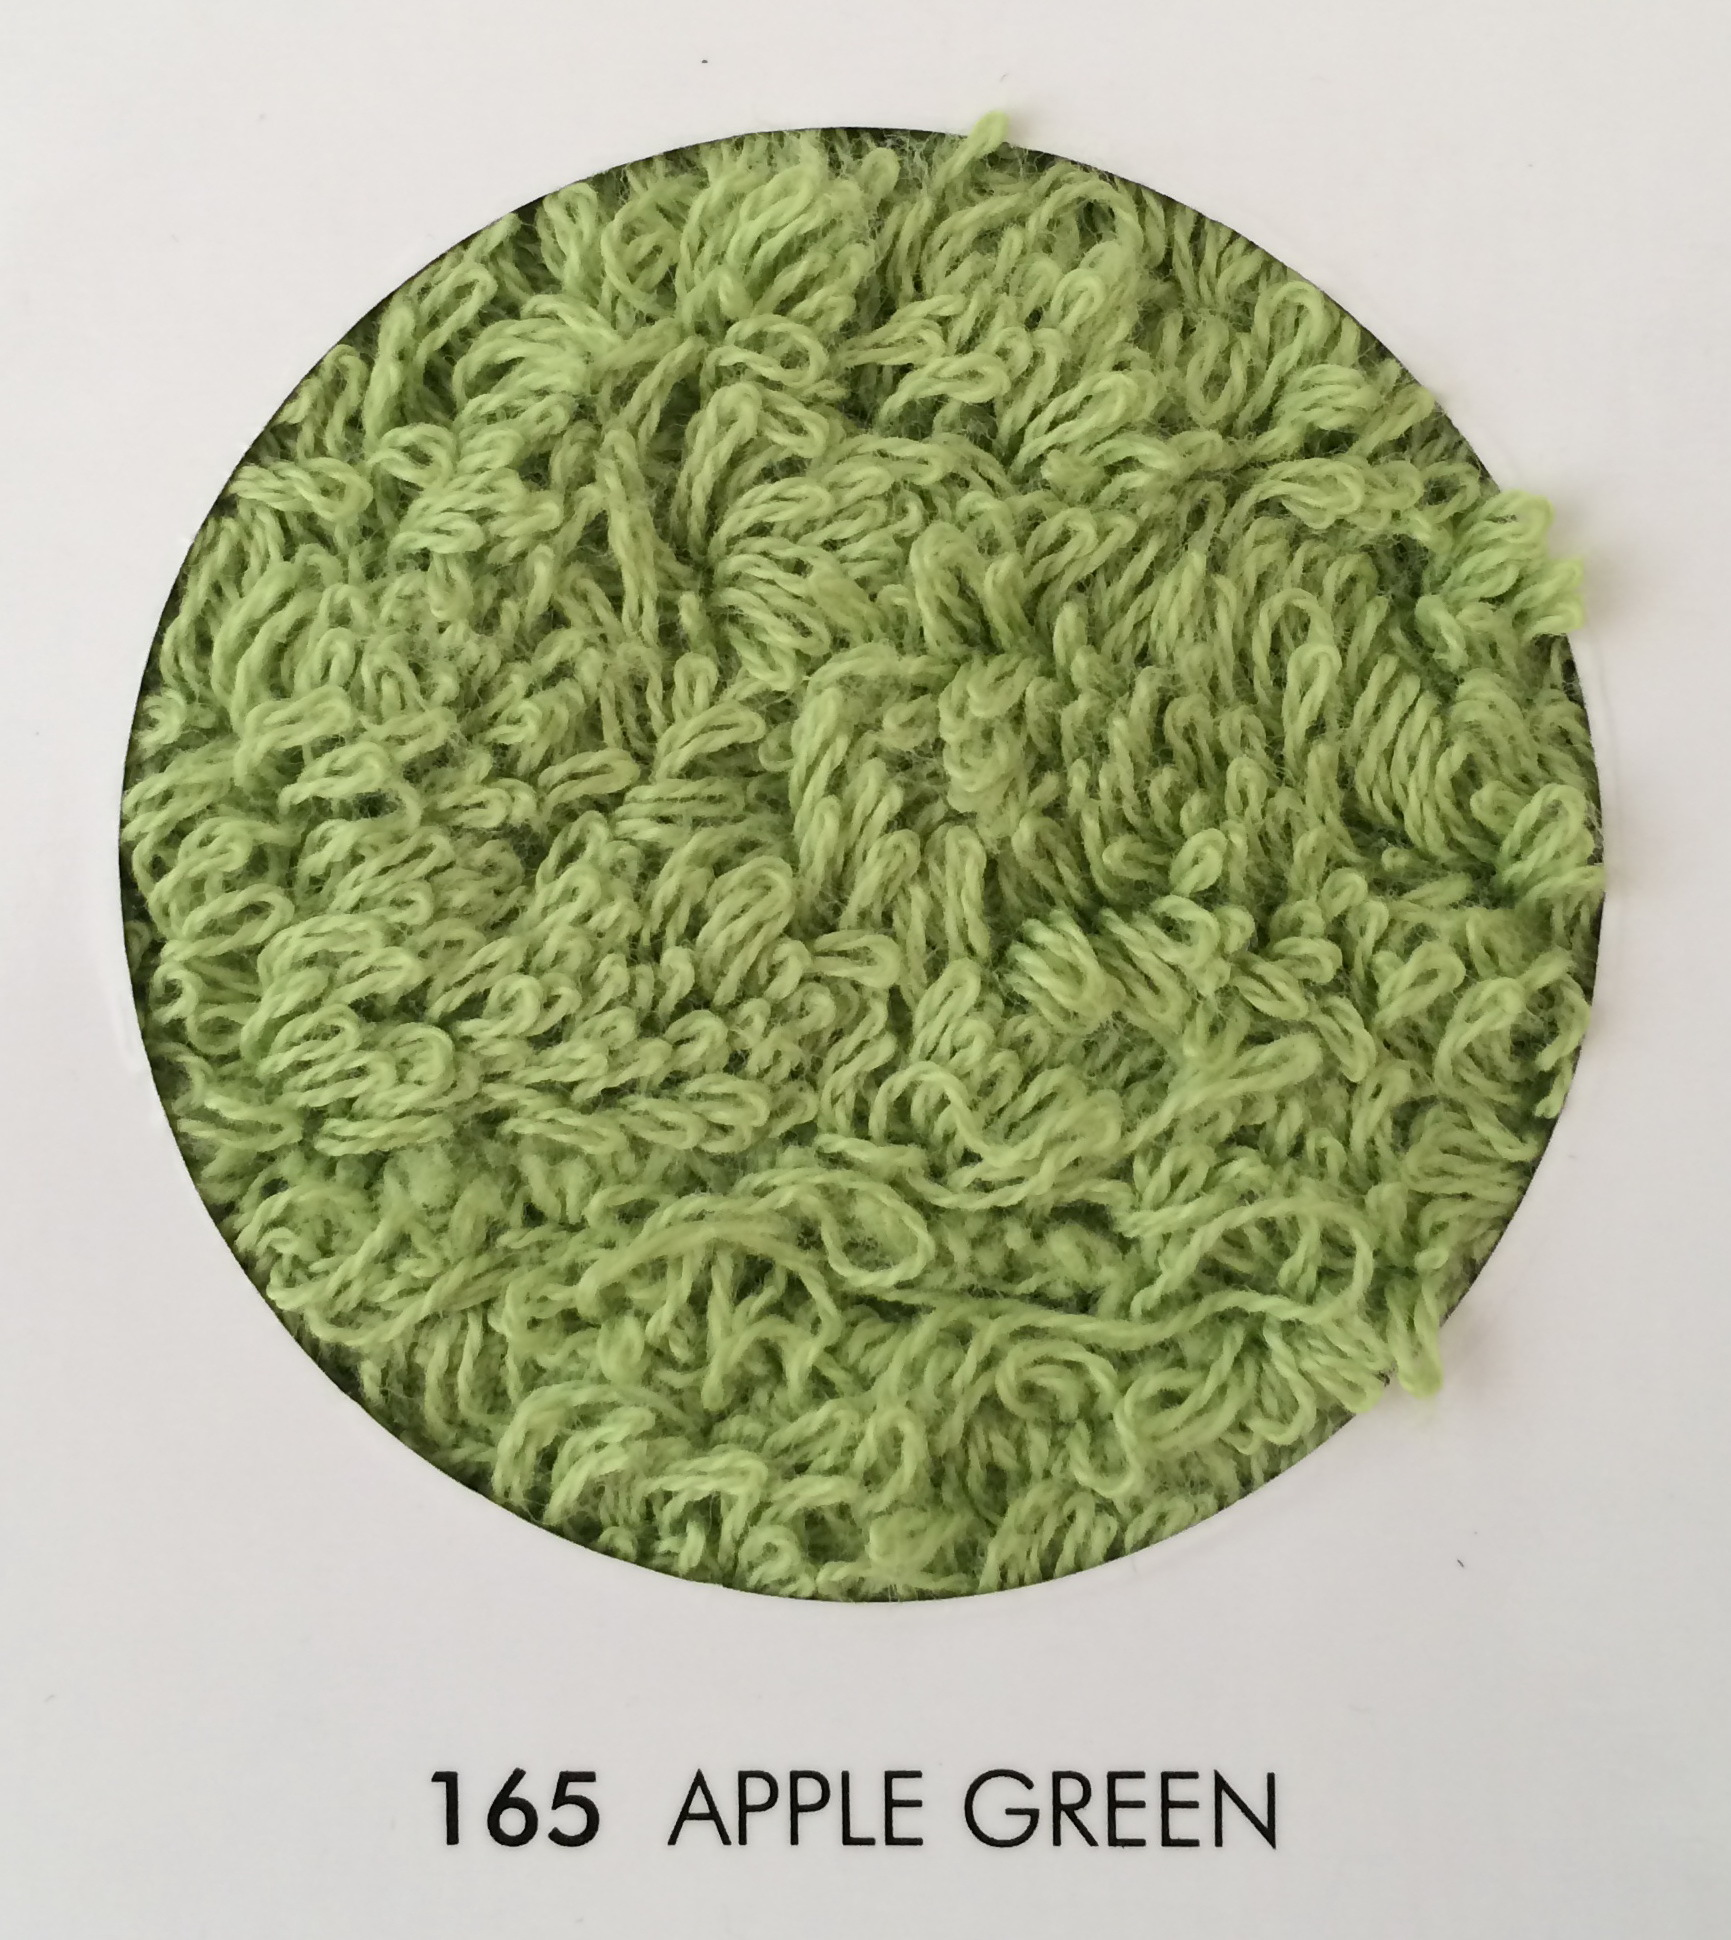 Коврики для унитаза Коврик для унитаза 60x60 Abyss & Habidecor Must 165 Apple Green elitnyy-kovrik-dlya-unitaza-must-165-apple-green-ot-abyss-habidecor-portugaliya.jpg